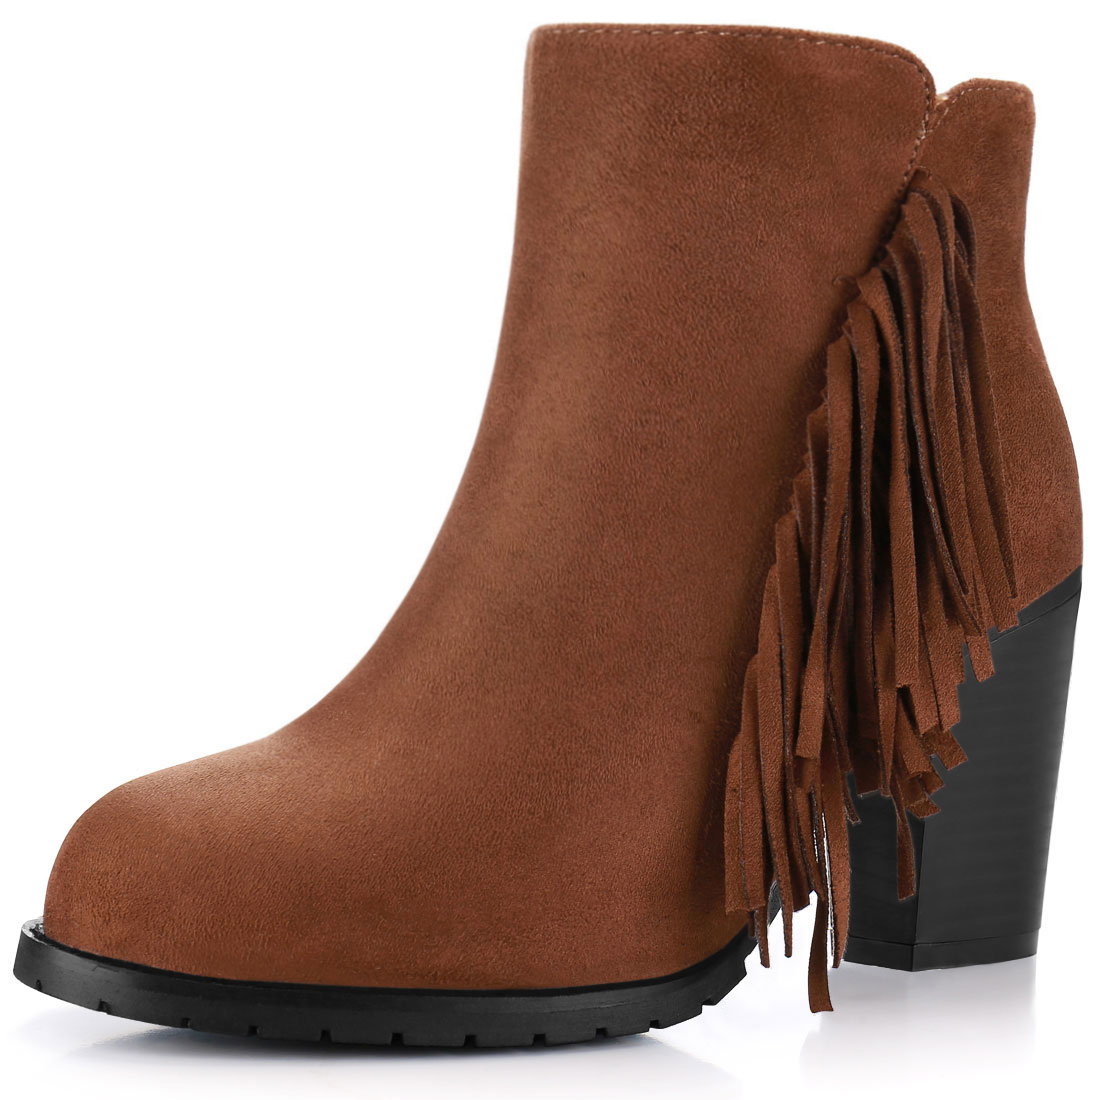 Women Fringe Trim Block High Heel Zip Side Ankle Boots Cognac US 7